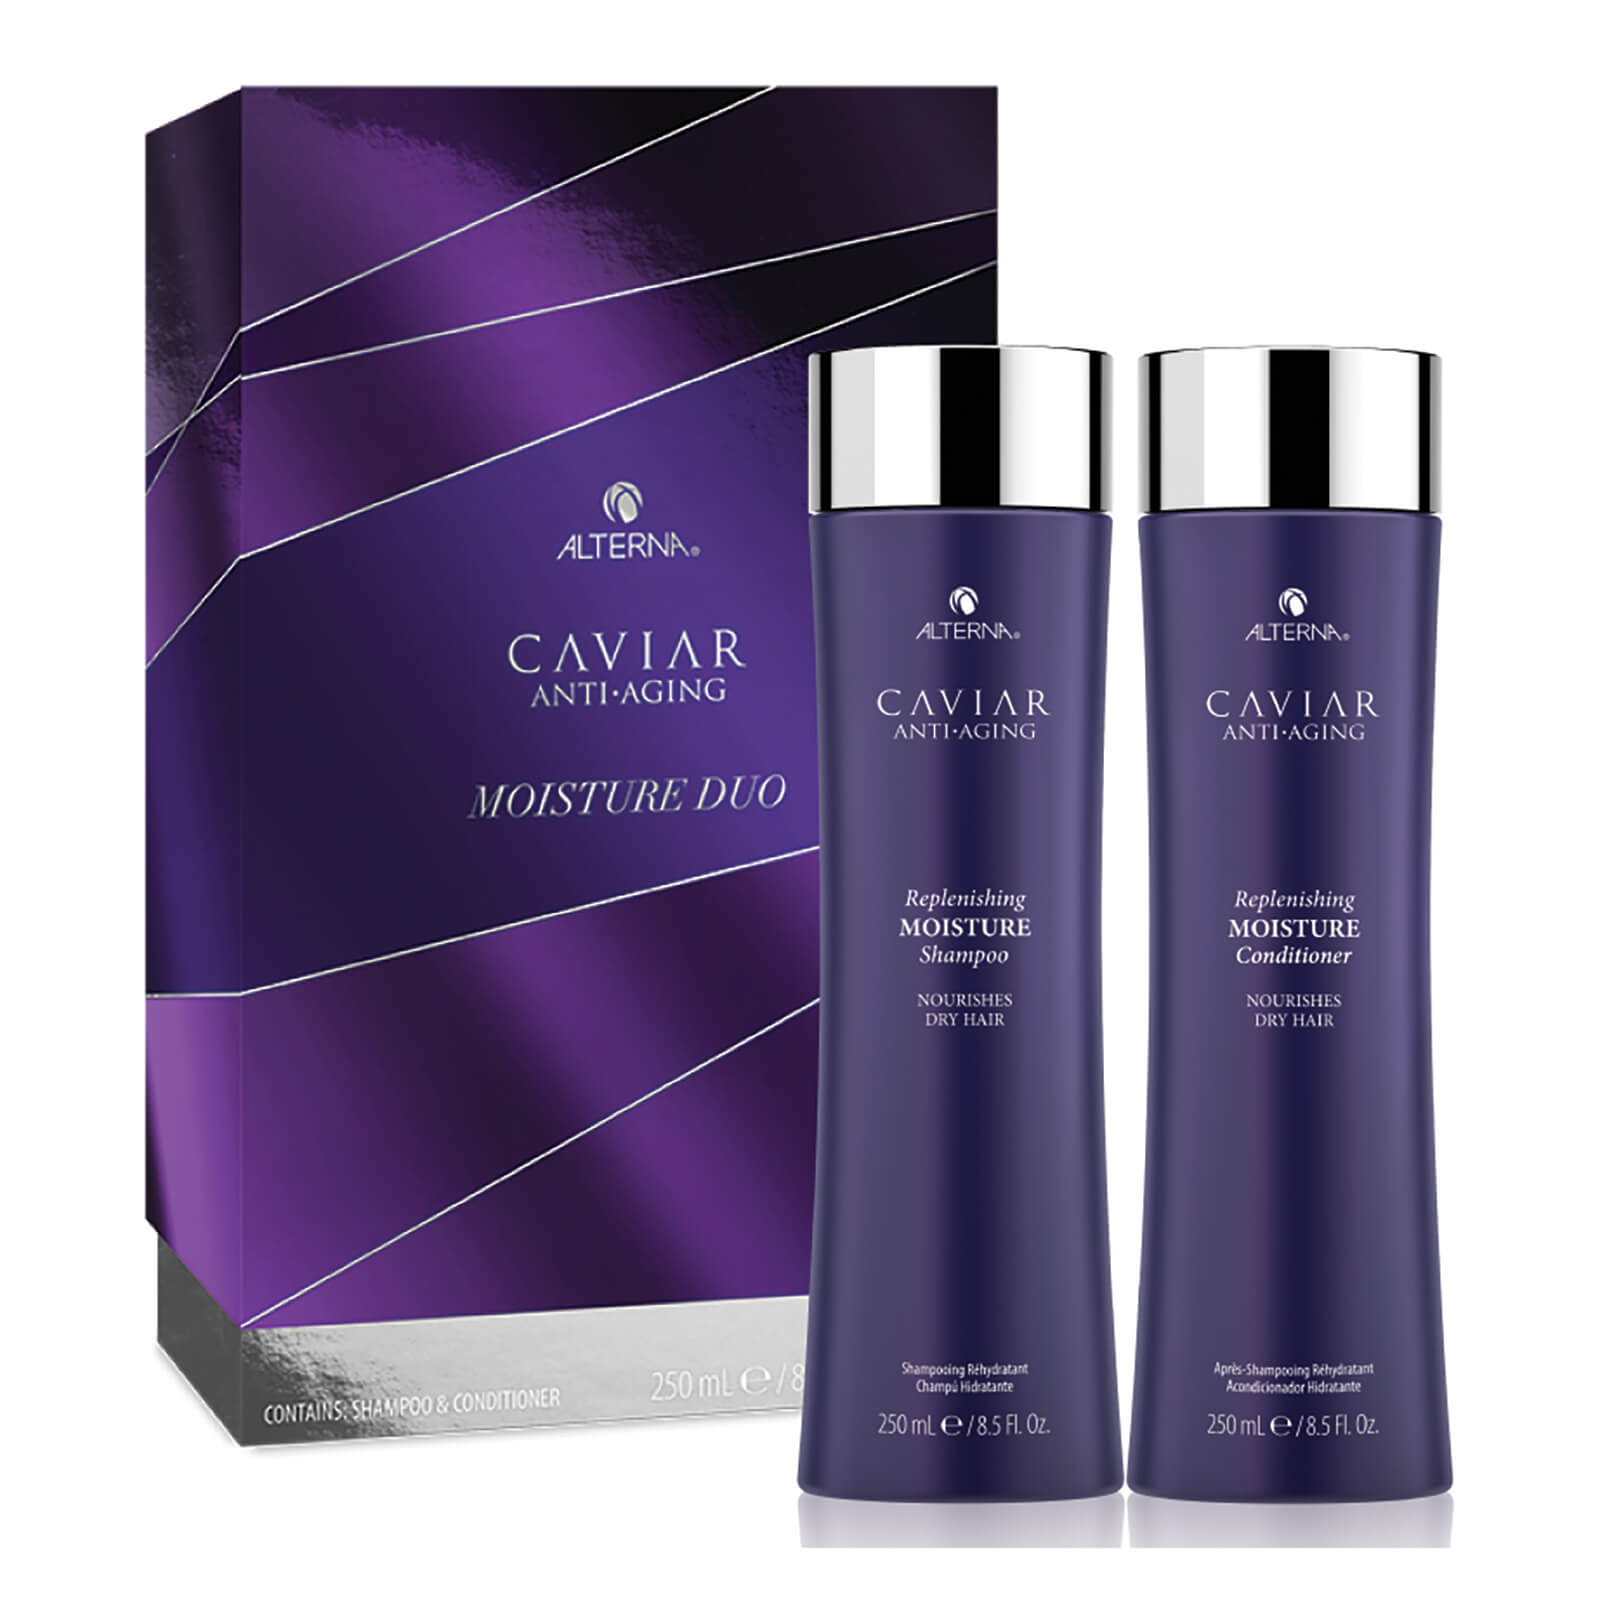 0b3a344cf21 Showing image 0 - null. Description. Alterna Haircare's Caviar Anti-Aging Replenishing  Moisture Duo Gift ...